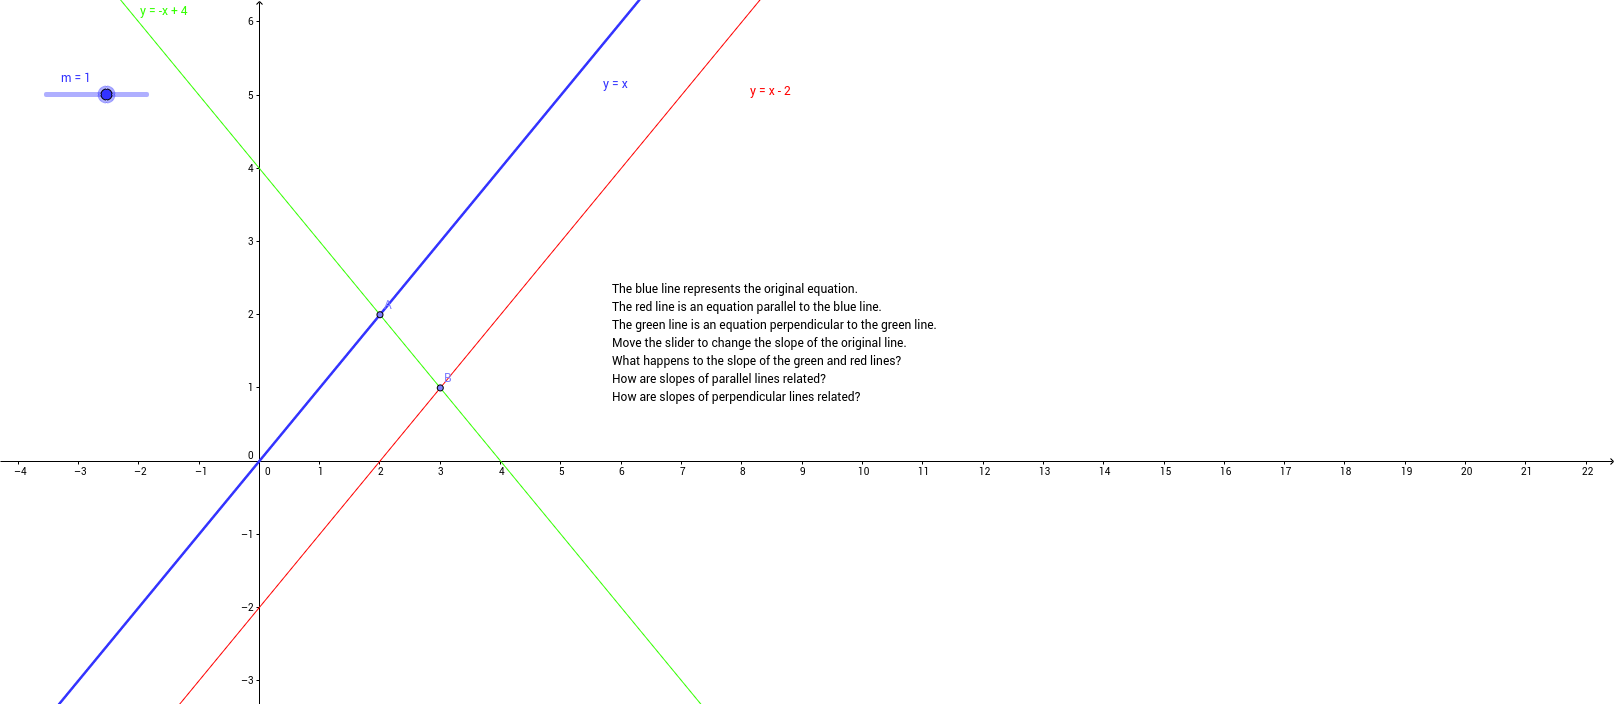 worksheet Slope Of Parallel And Perpendicular Lines Worksheet parallel perpendicular lines geogebra slopes of and are related to it view worksheet